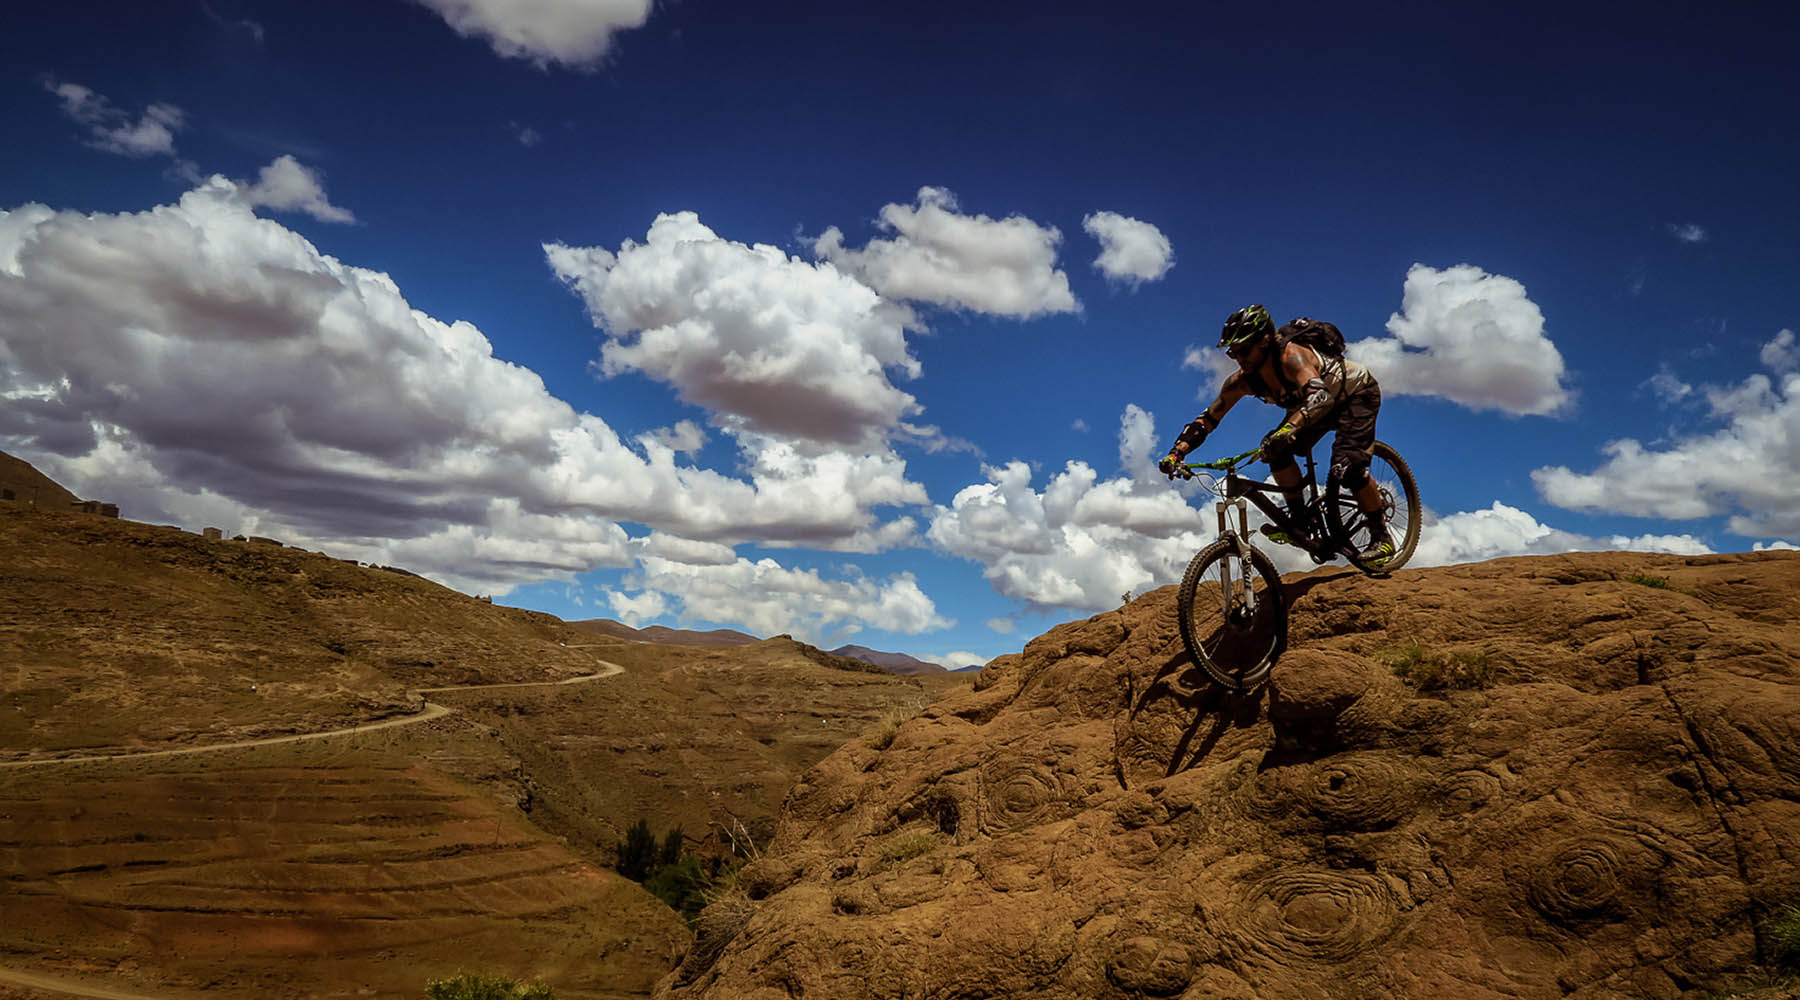 lesotho gravity experience extreme-crazy-tours-trail-riding-detour-trails-adventure-mountain-africa